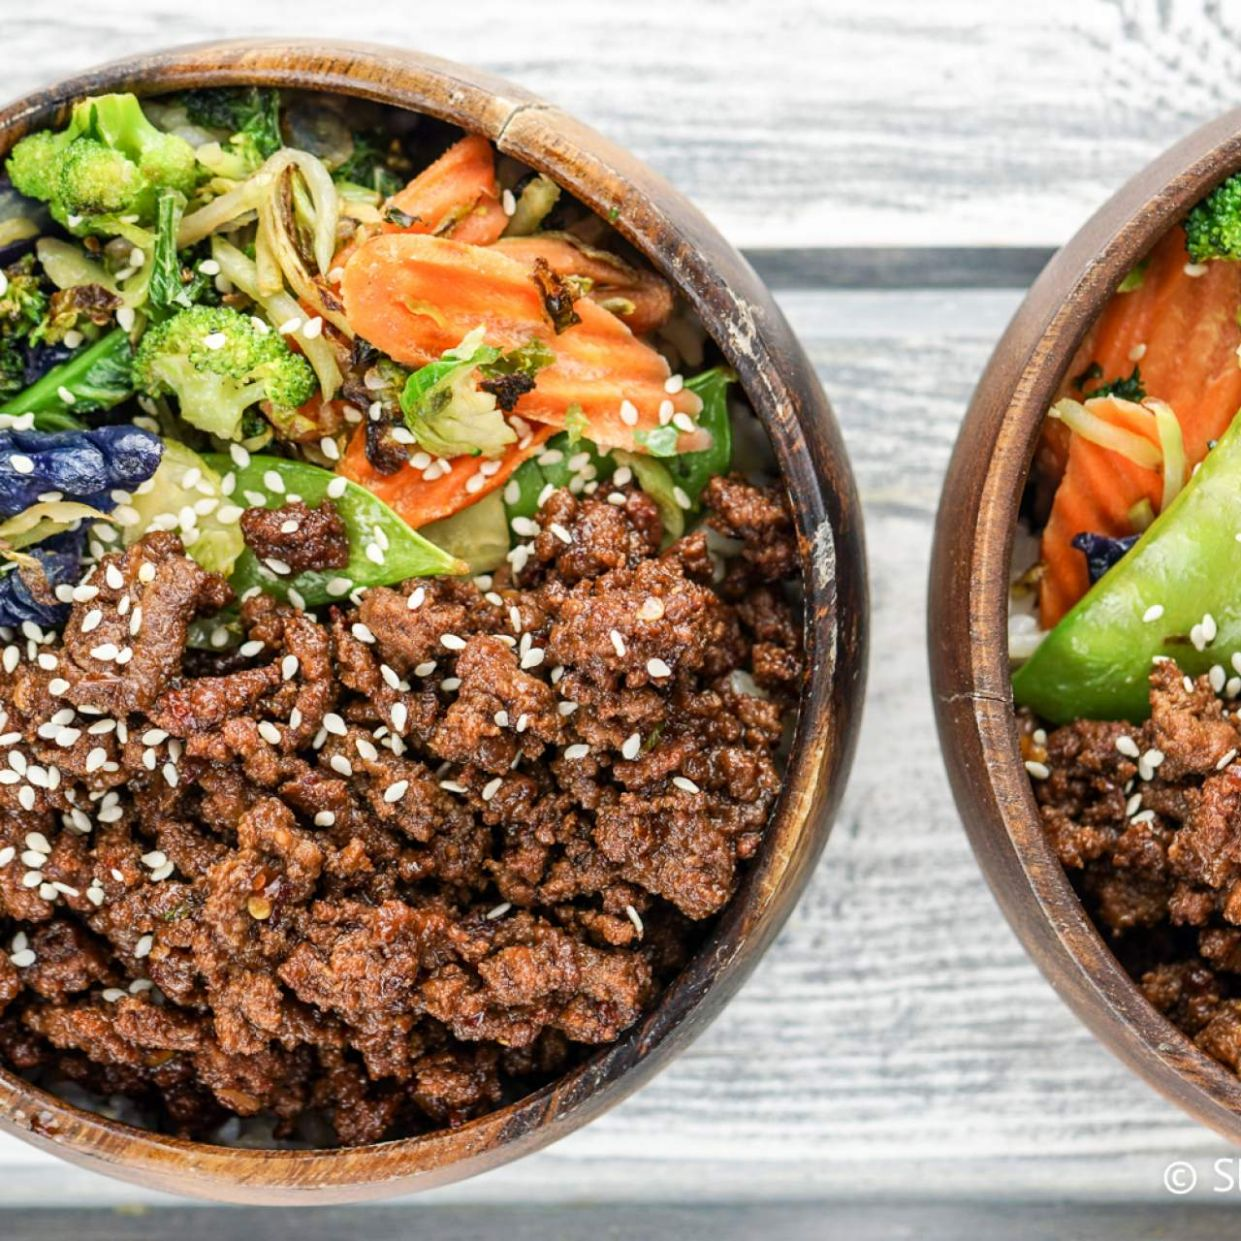 Healthy Korean Ground Beef with Vegetables - Healthy Recipes Using Ground Beef